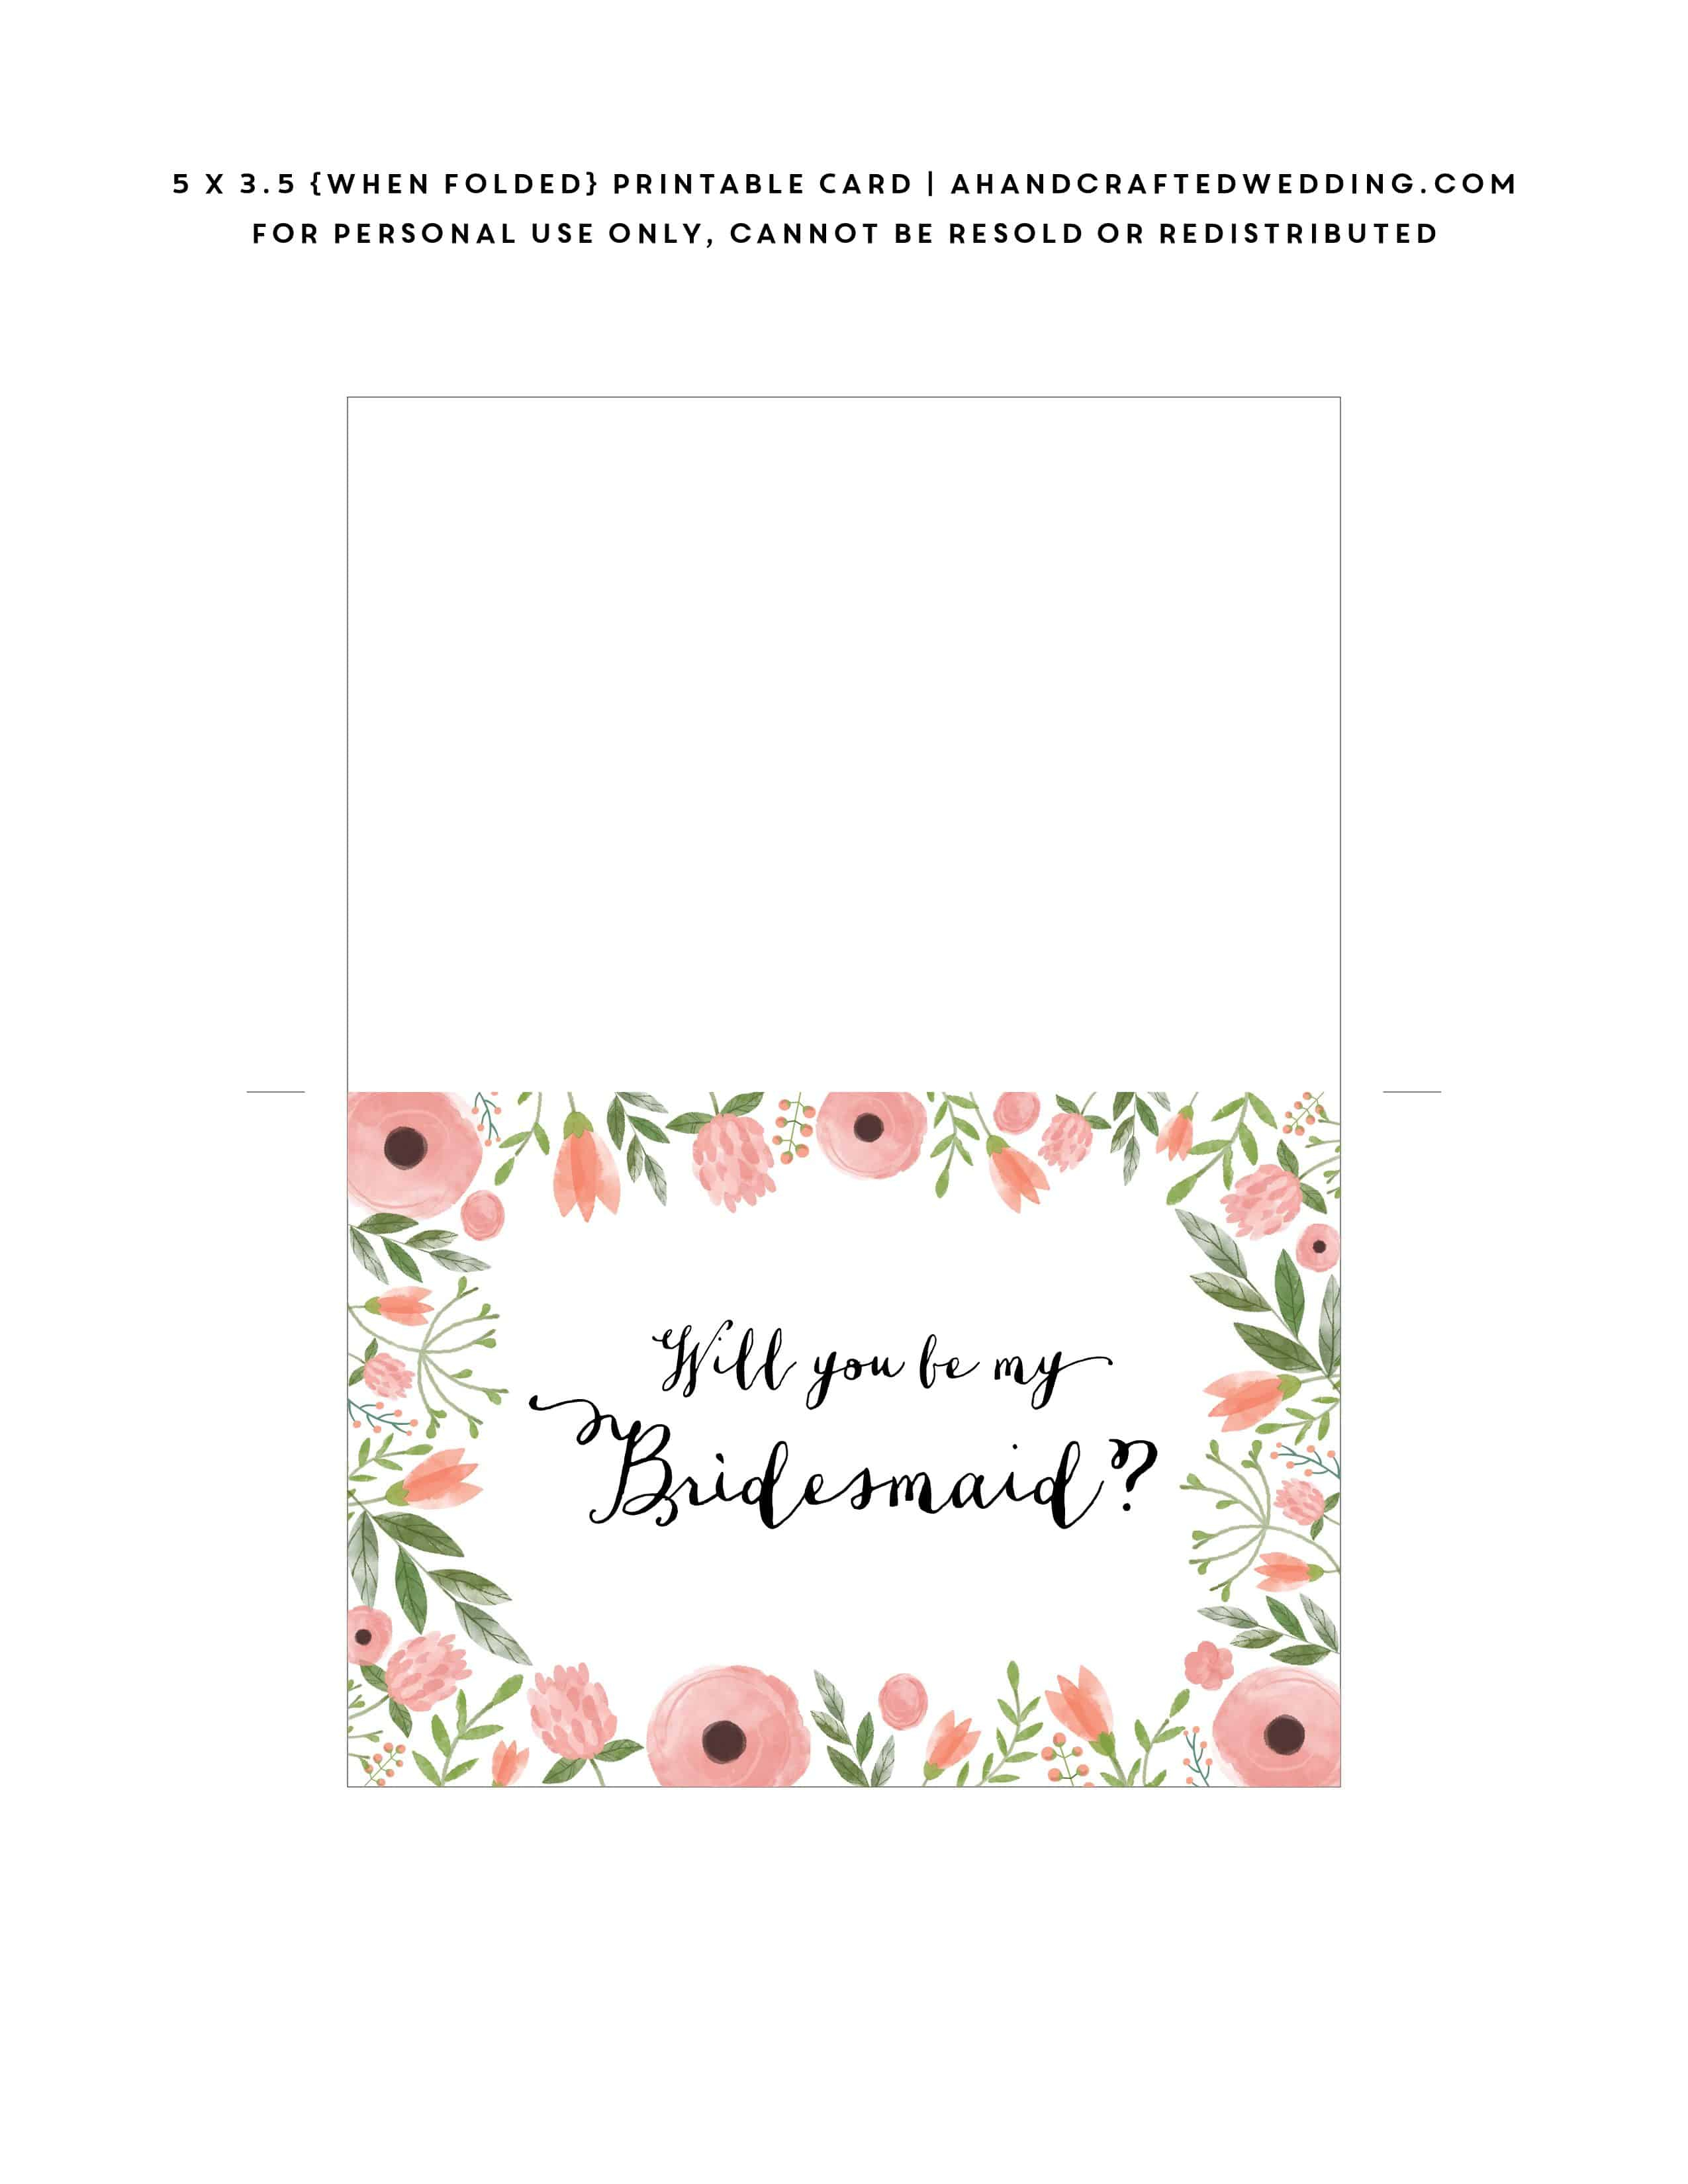 Free Printable Will You Be My Bridesmaid Card | Mountain Modern Life - Free Printable Will You Be My Bridesmaid Cards